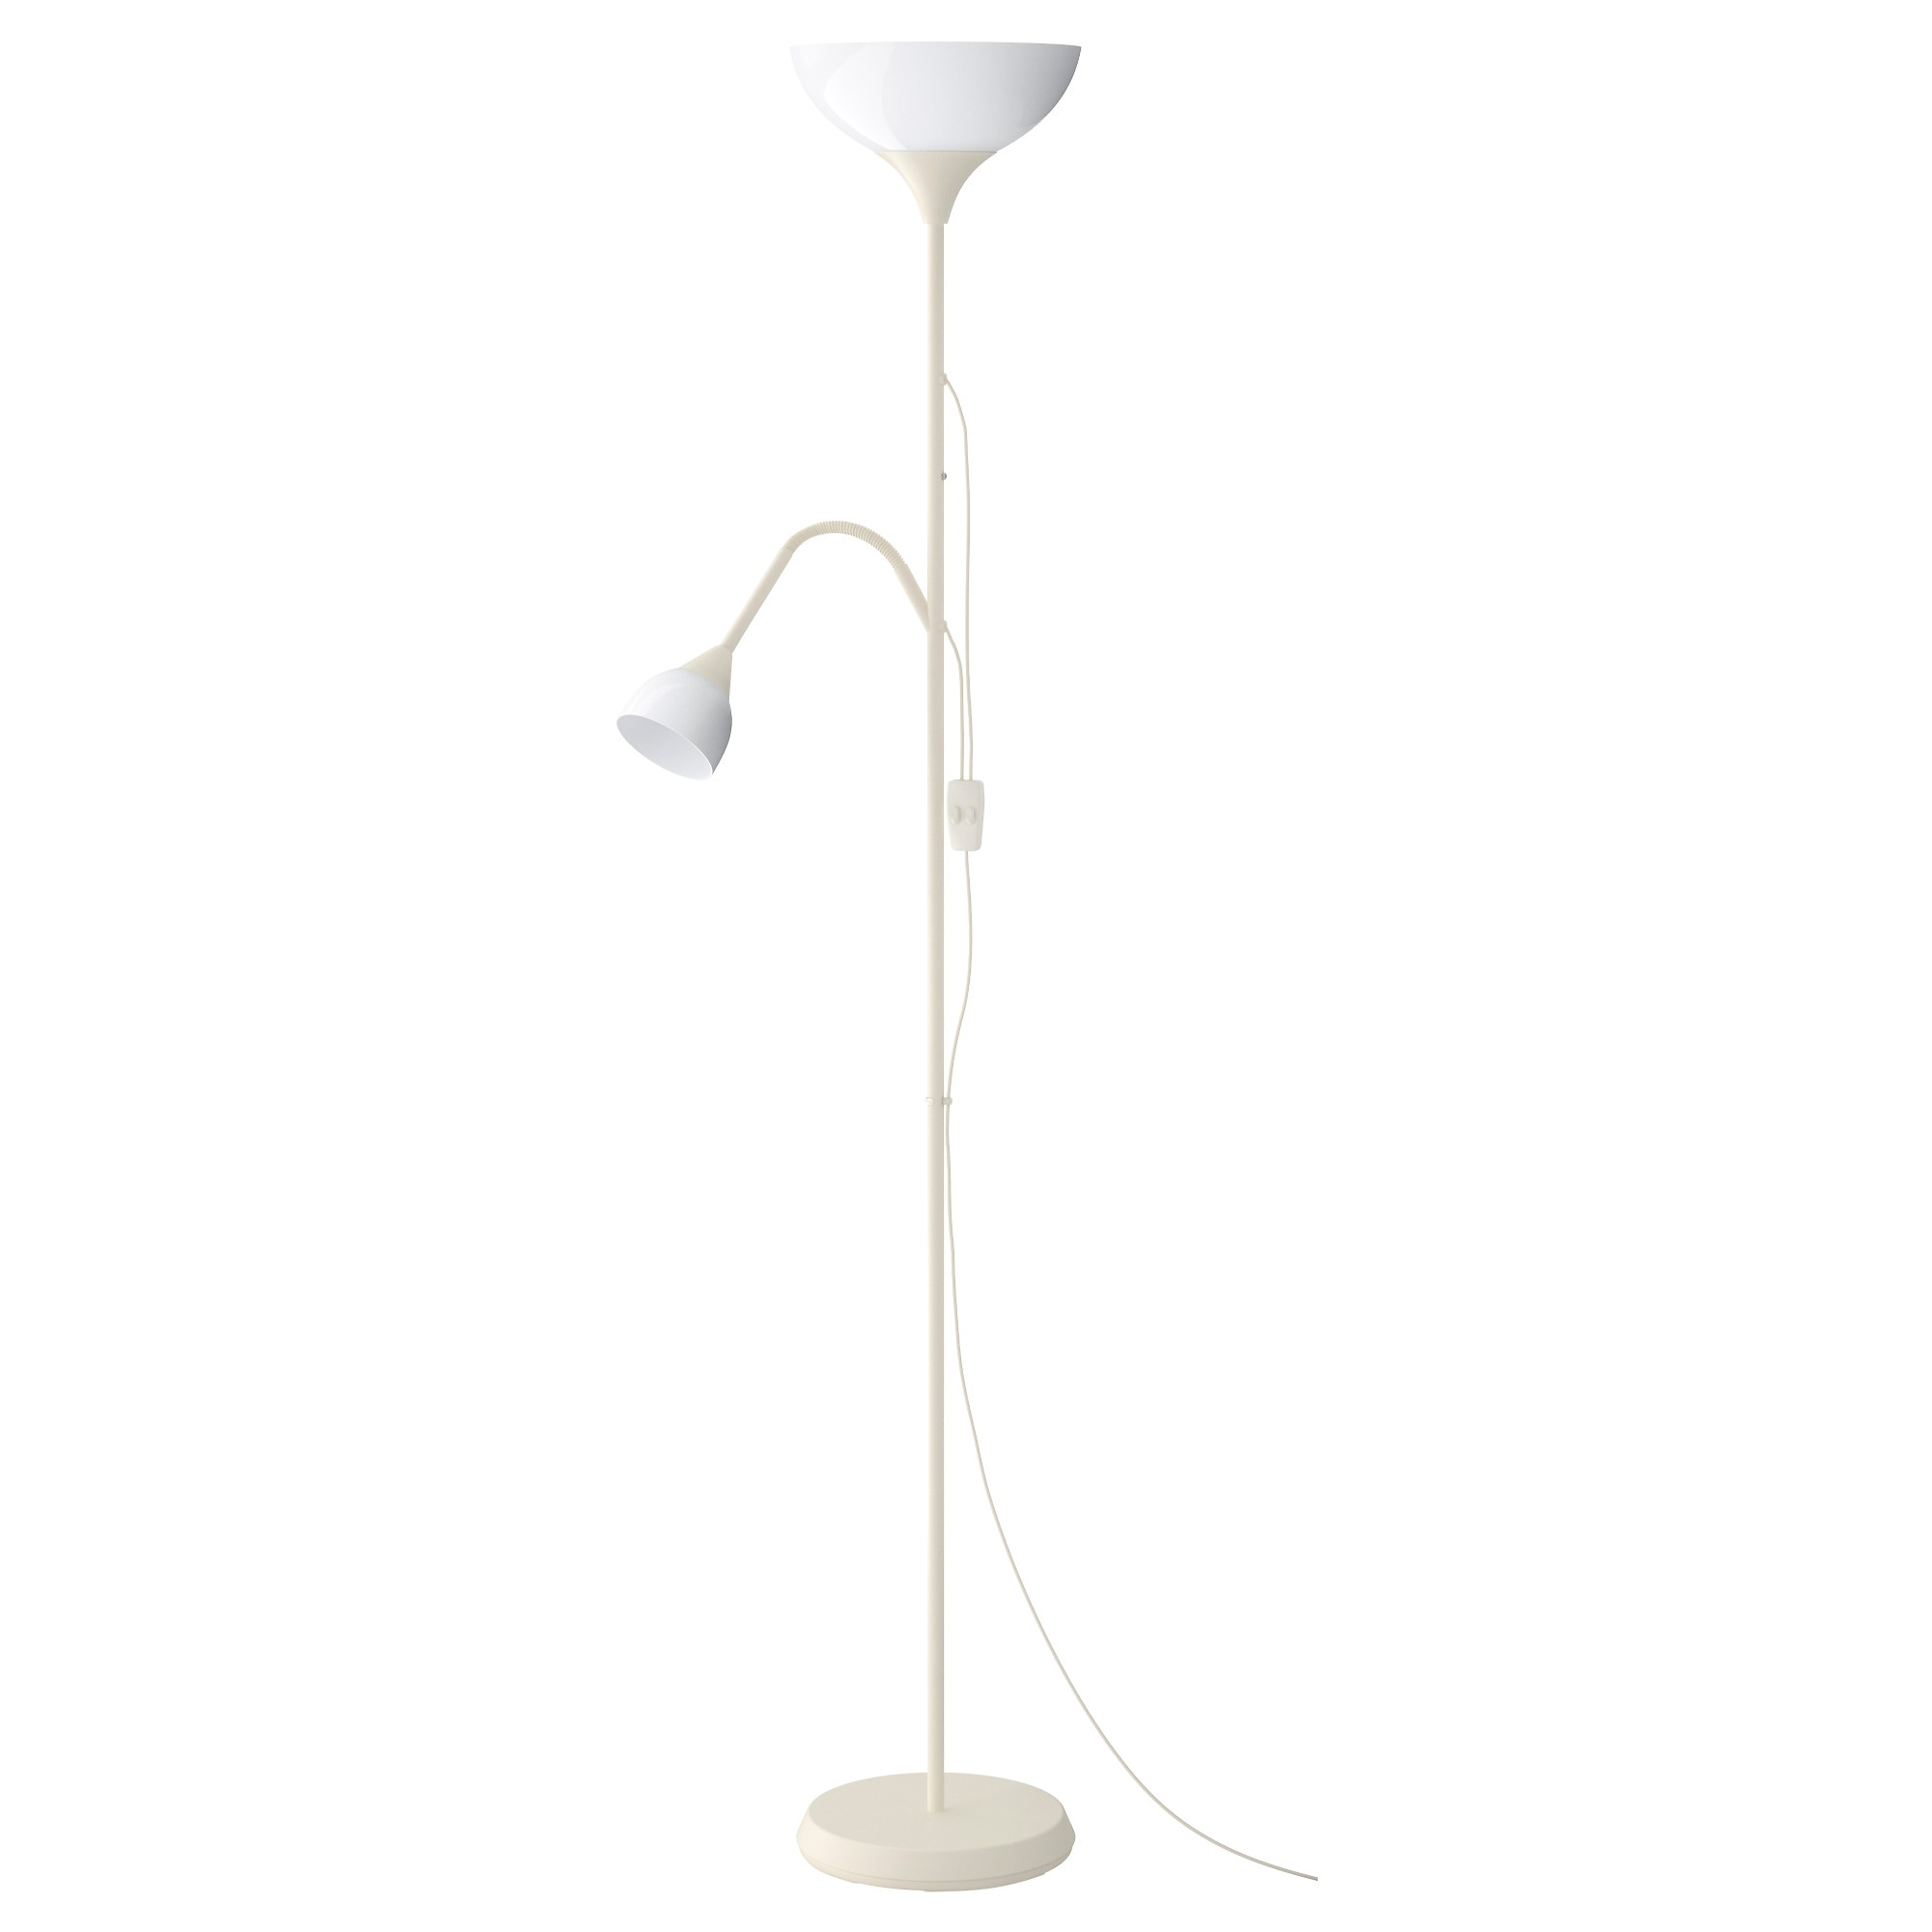 ikea floor lamps lighting. Ikea Floor Lamps Lighting